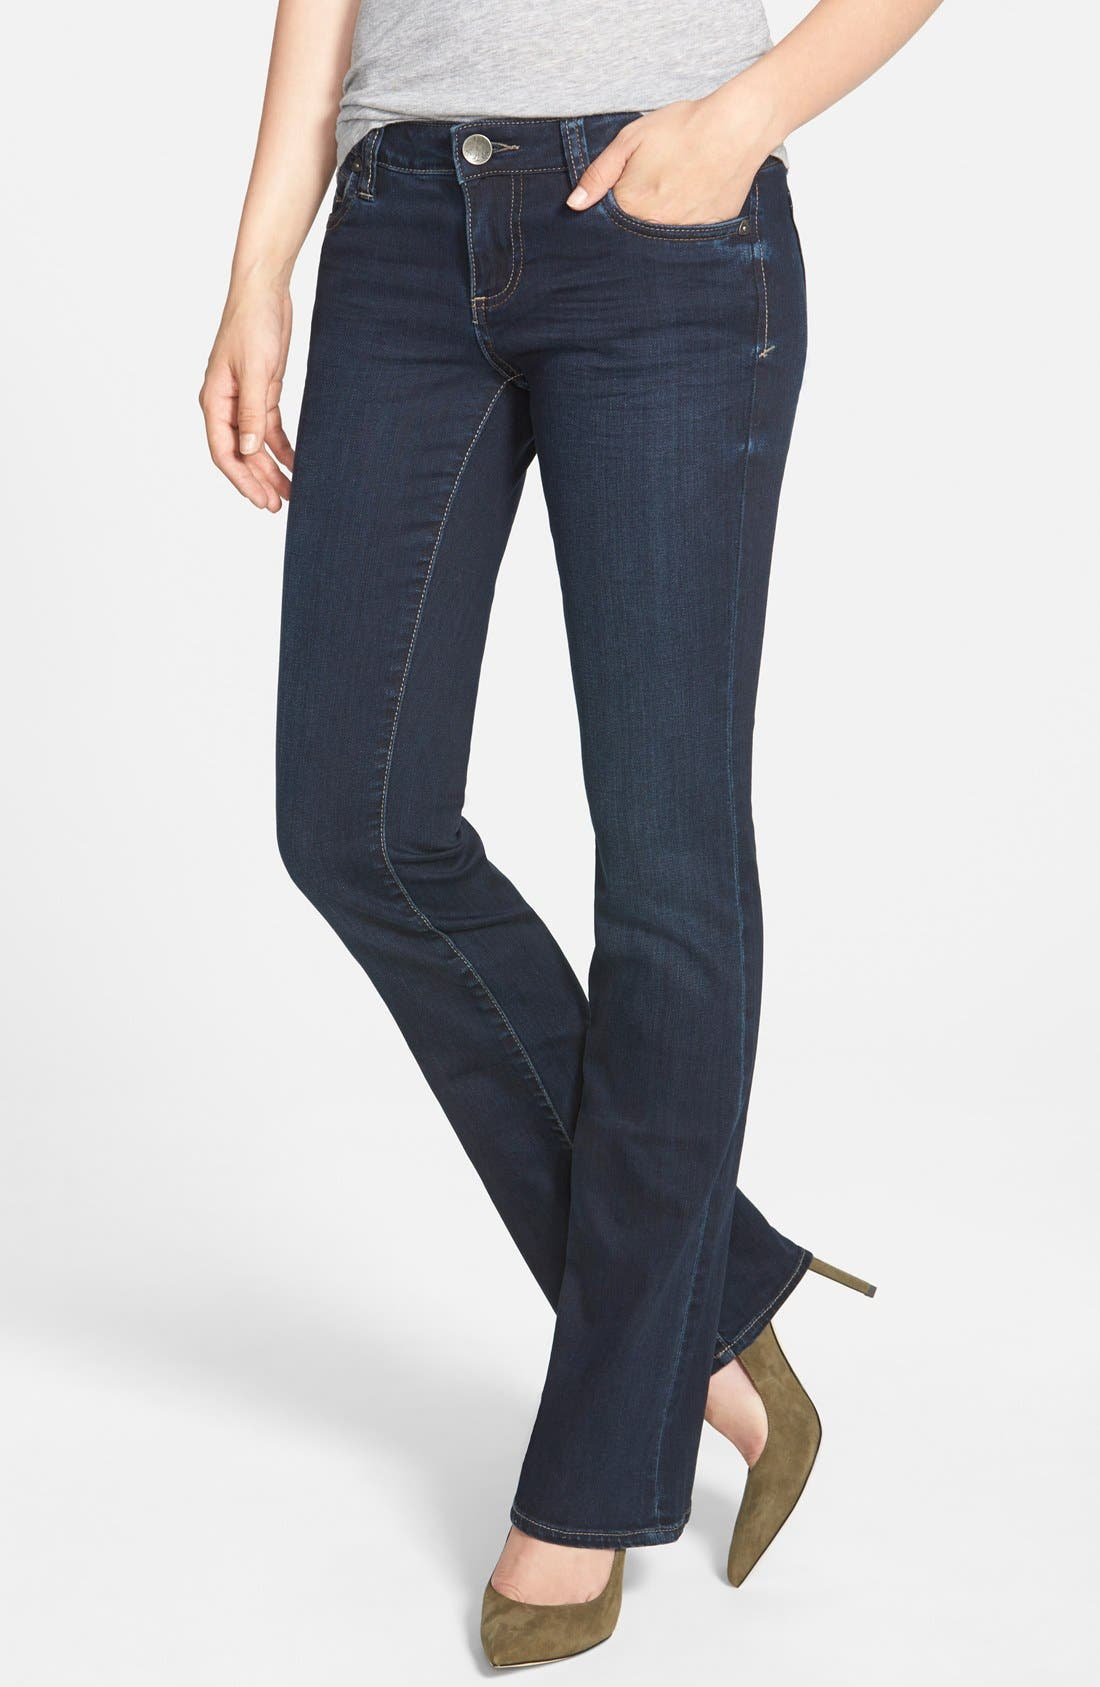 Main Image - KUT from the Kloth 'Natalie' Stretch Bootcut Jeans(Beneficial) (Regular & Petite)